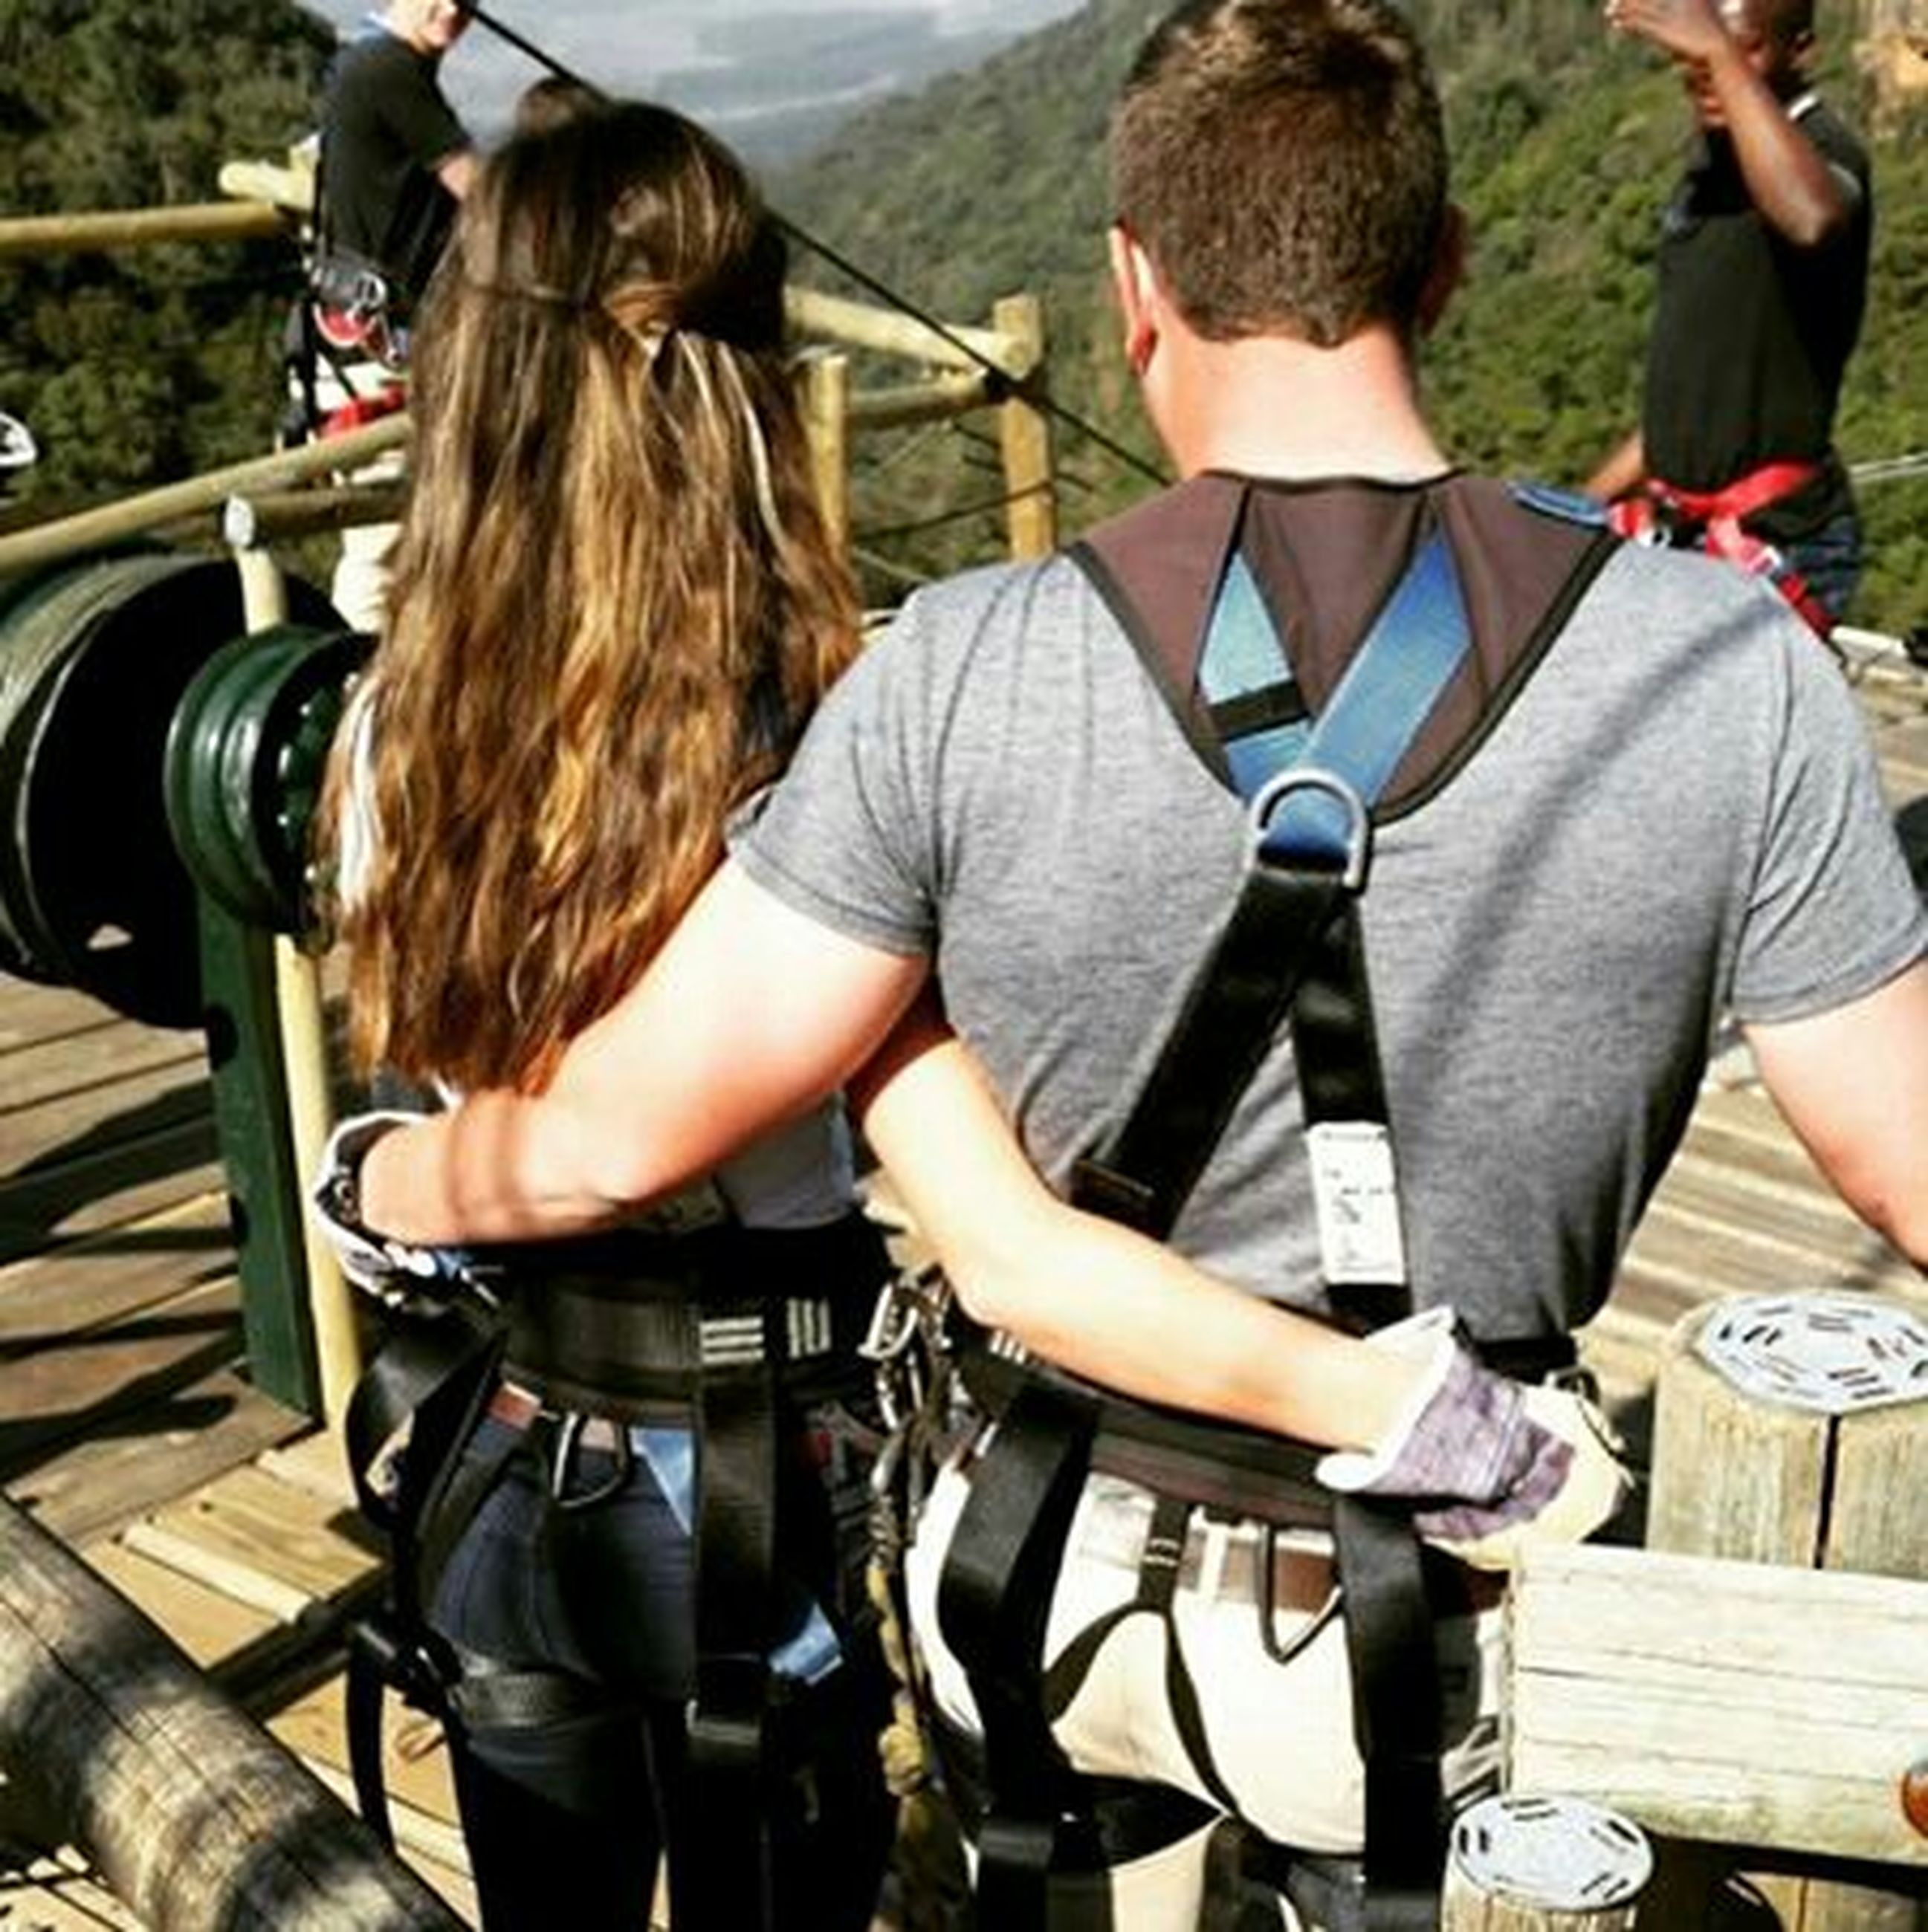 lifestyles, casual clothing, leisure activity, sitting, togetherness, men, standing, person, rear view, friendship, full length, bonding, day, railing, holding